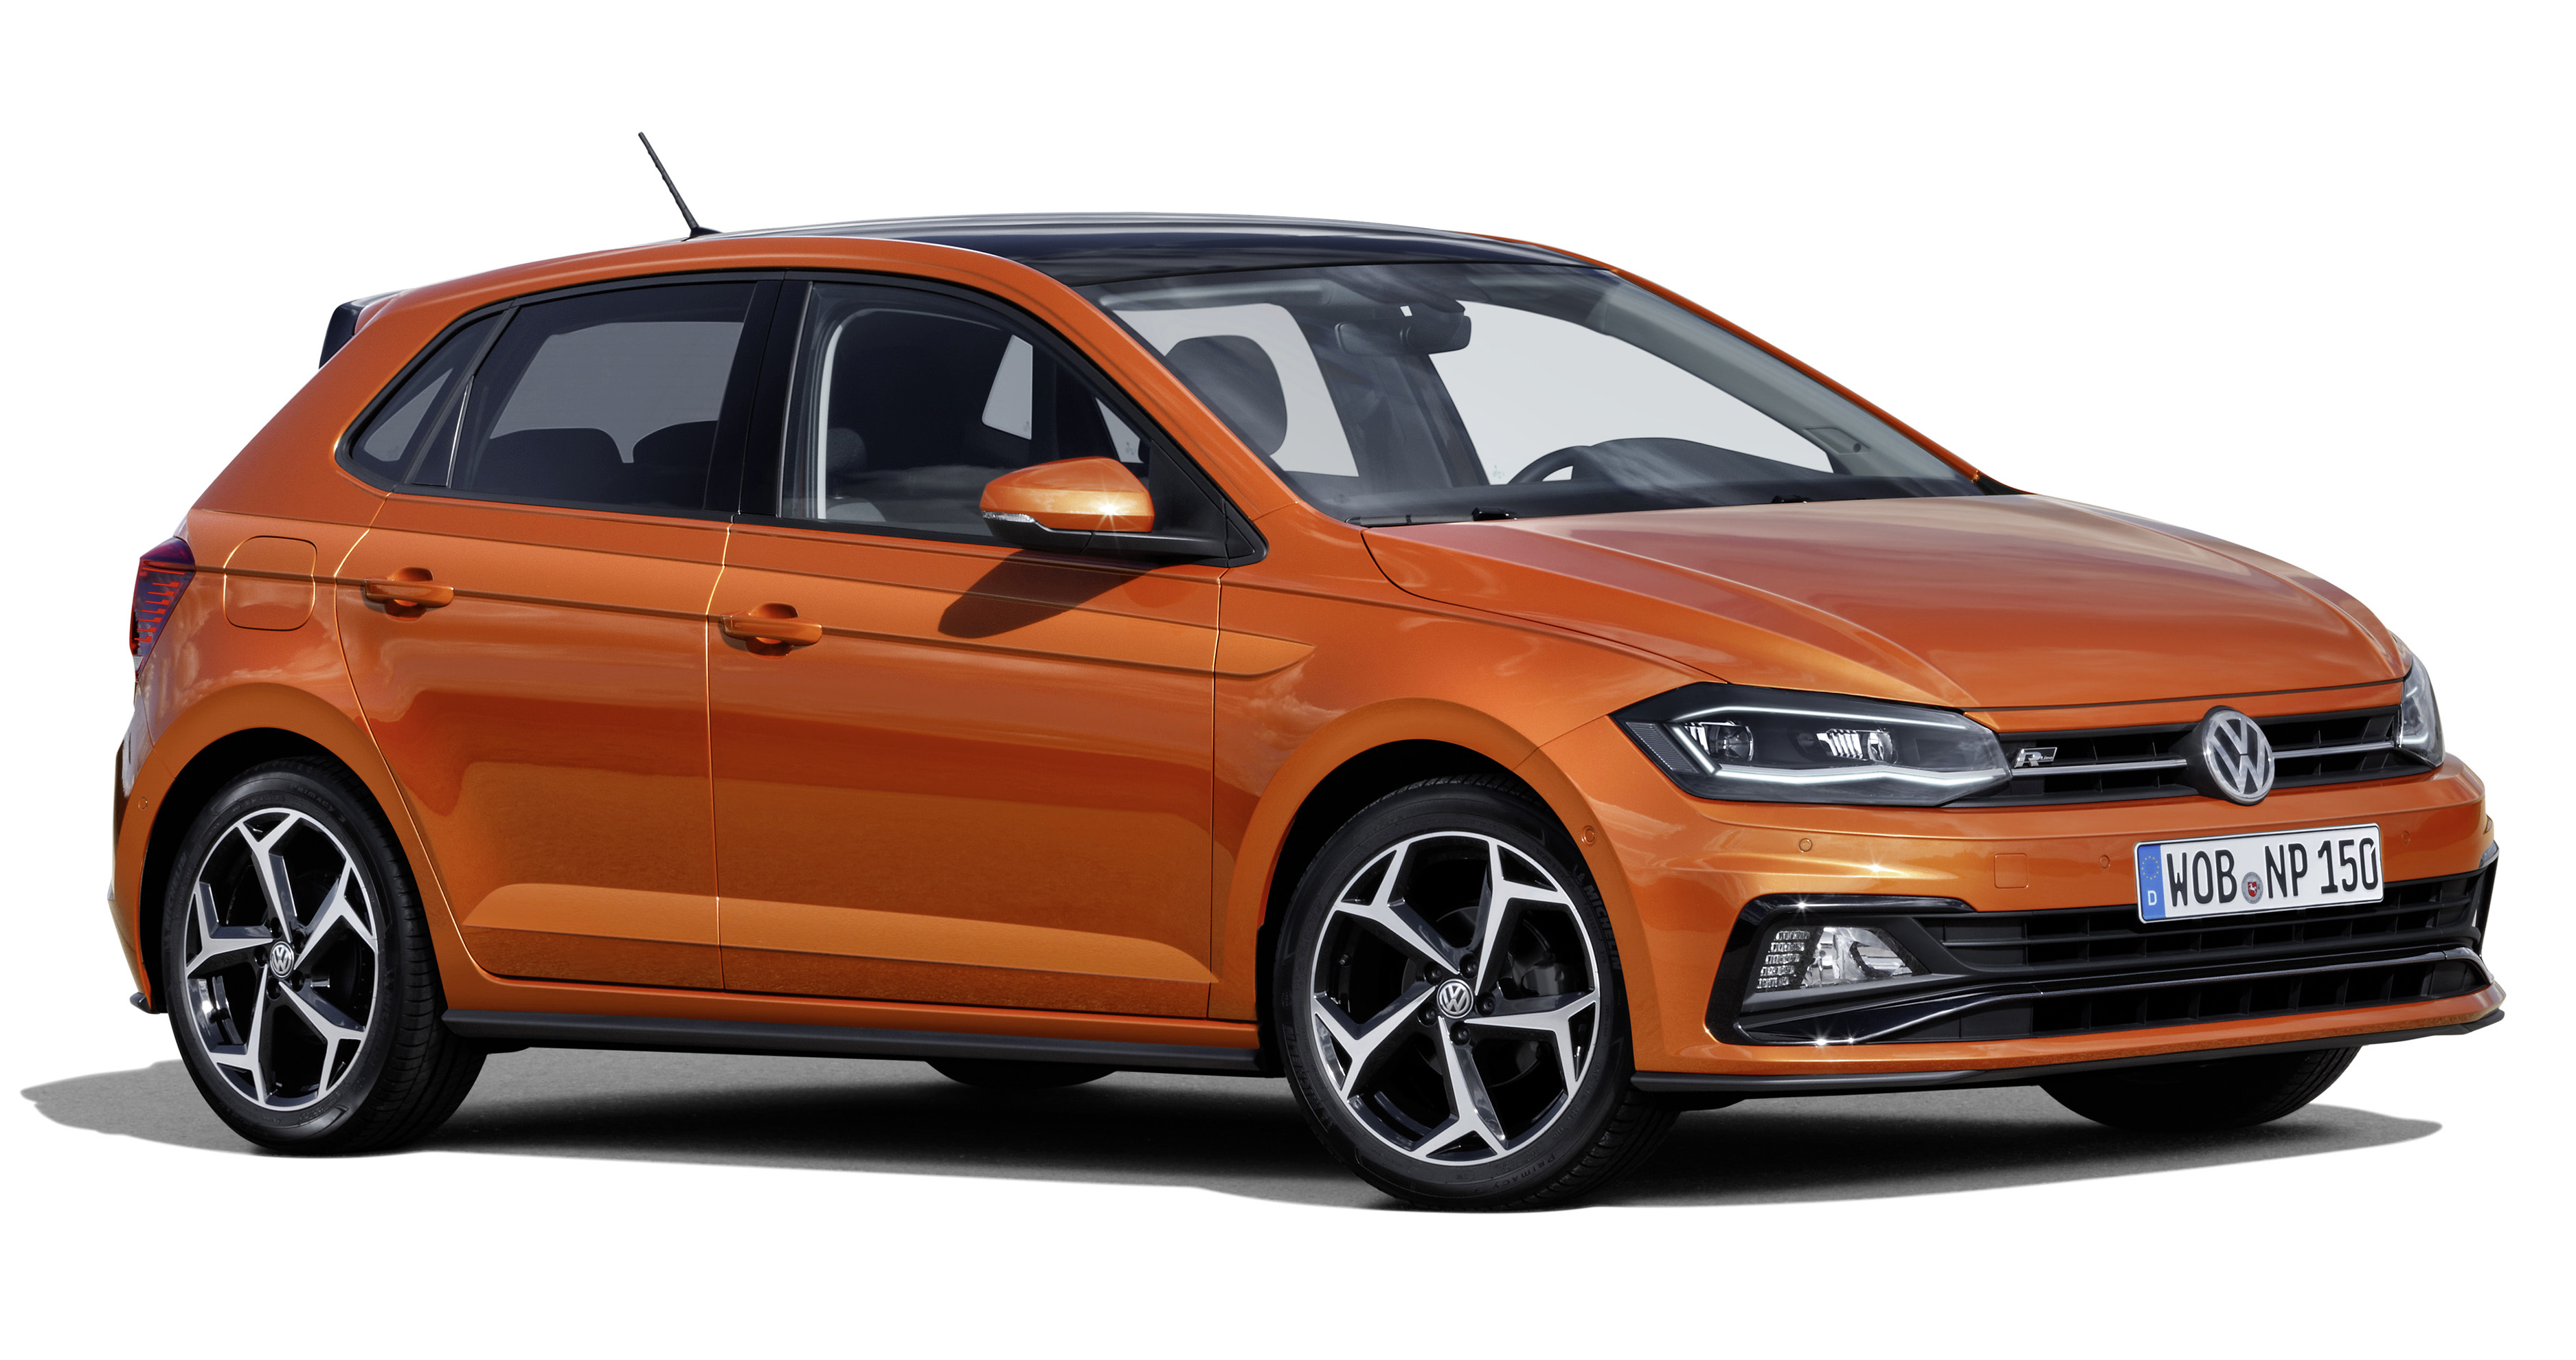 2018 volkswagen polo mk6 gets mqb platform new active info display aeb and active cruise. Black Bedroom Furniture Sets. Home Design Ideas